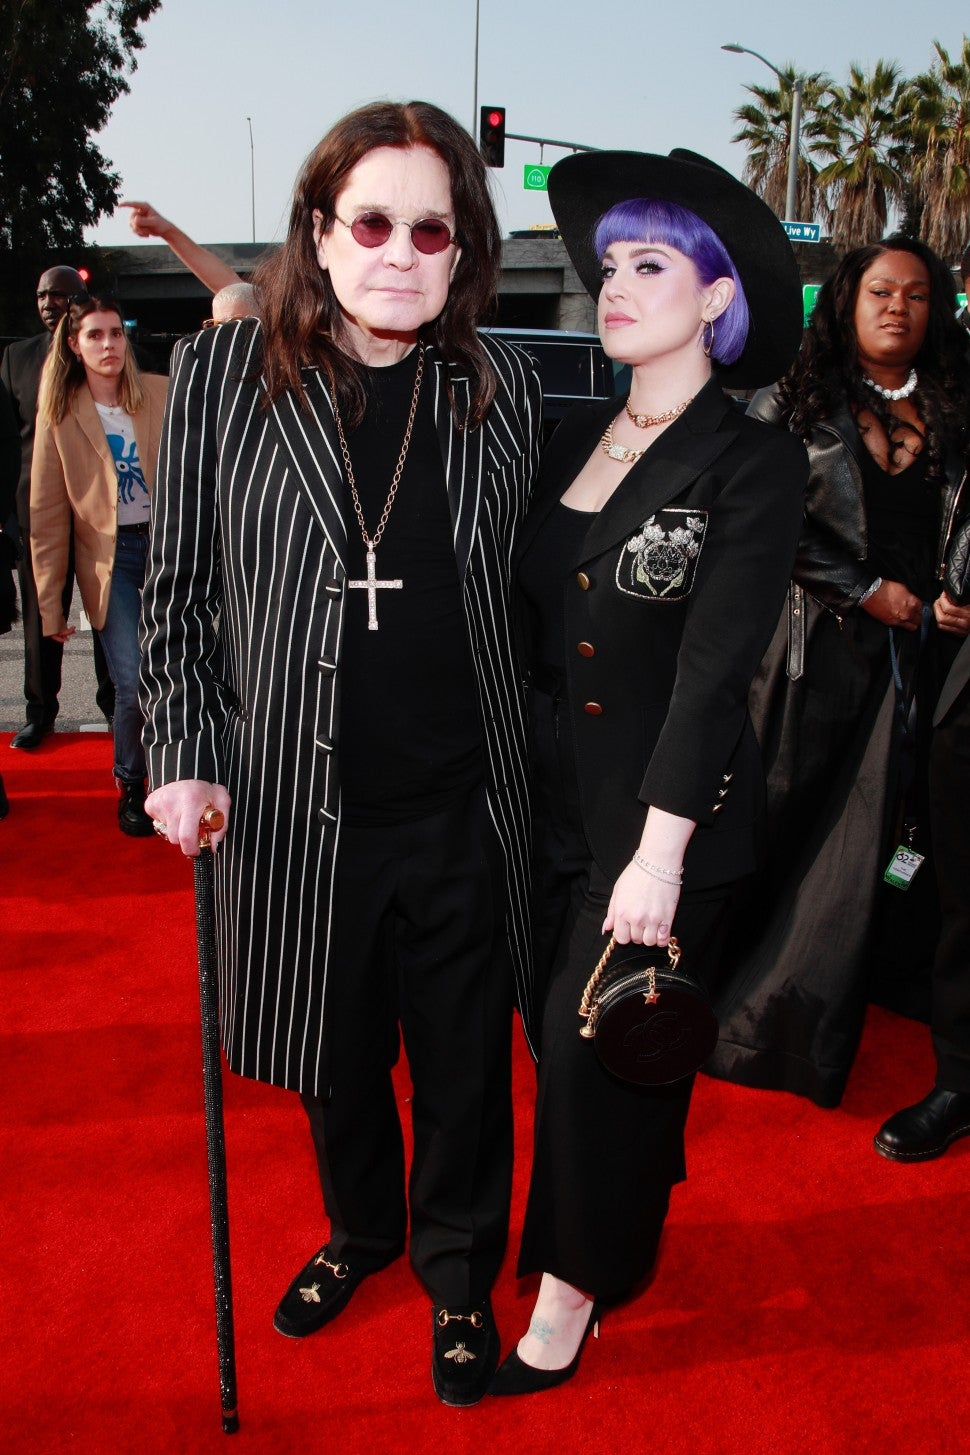 Ozzy Osbourne and Daughter Kelly Make GRAMMYs Appearance ...Kelly Osbourne 2020 Picture